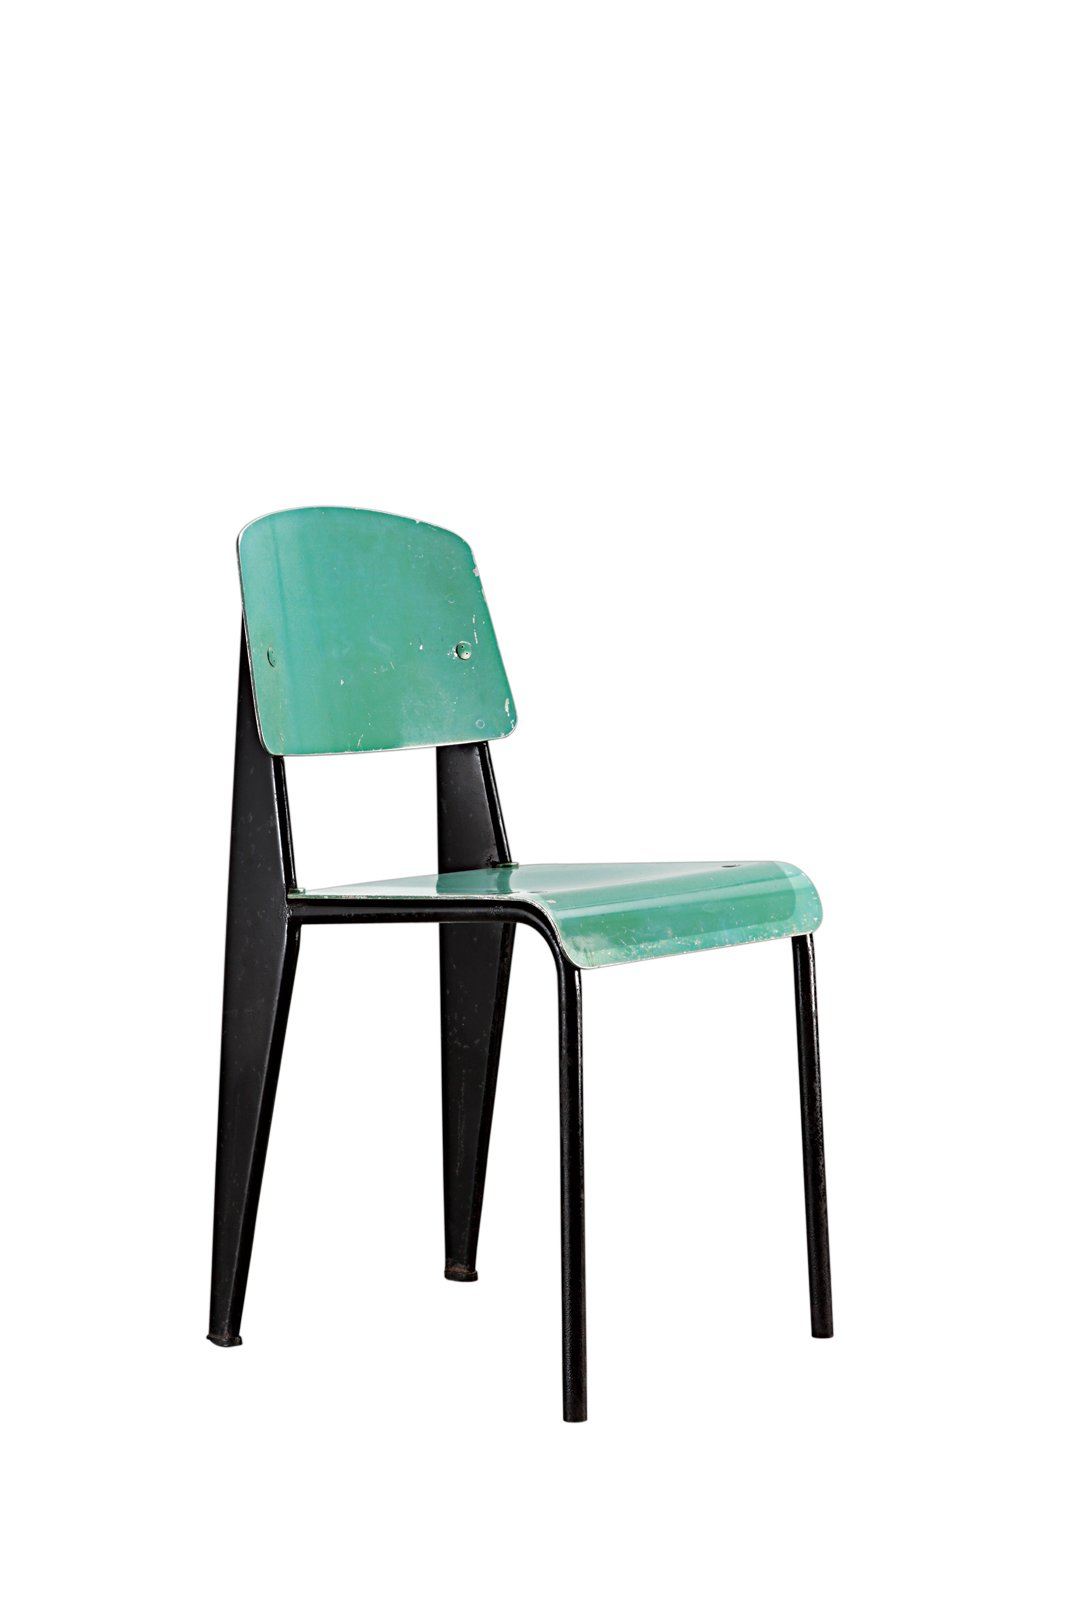 """""""There is no difference between building furniture and building a house."""" —Designer Jean Prouvé  Photo 3 of 3 in Jean Prouvé's Design Legacy"""